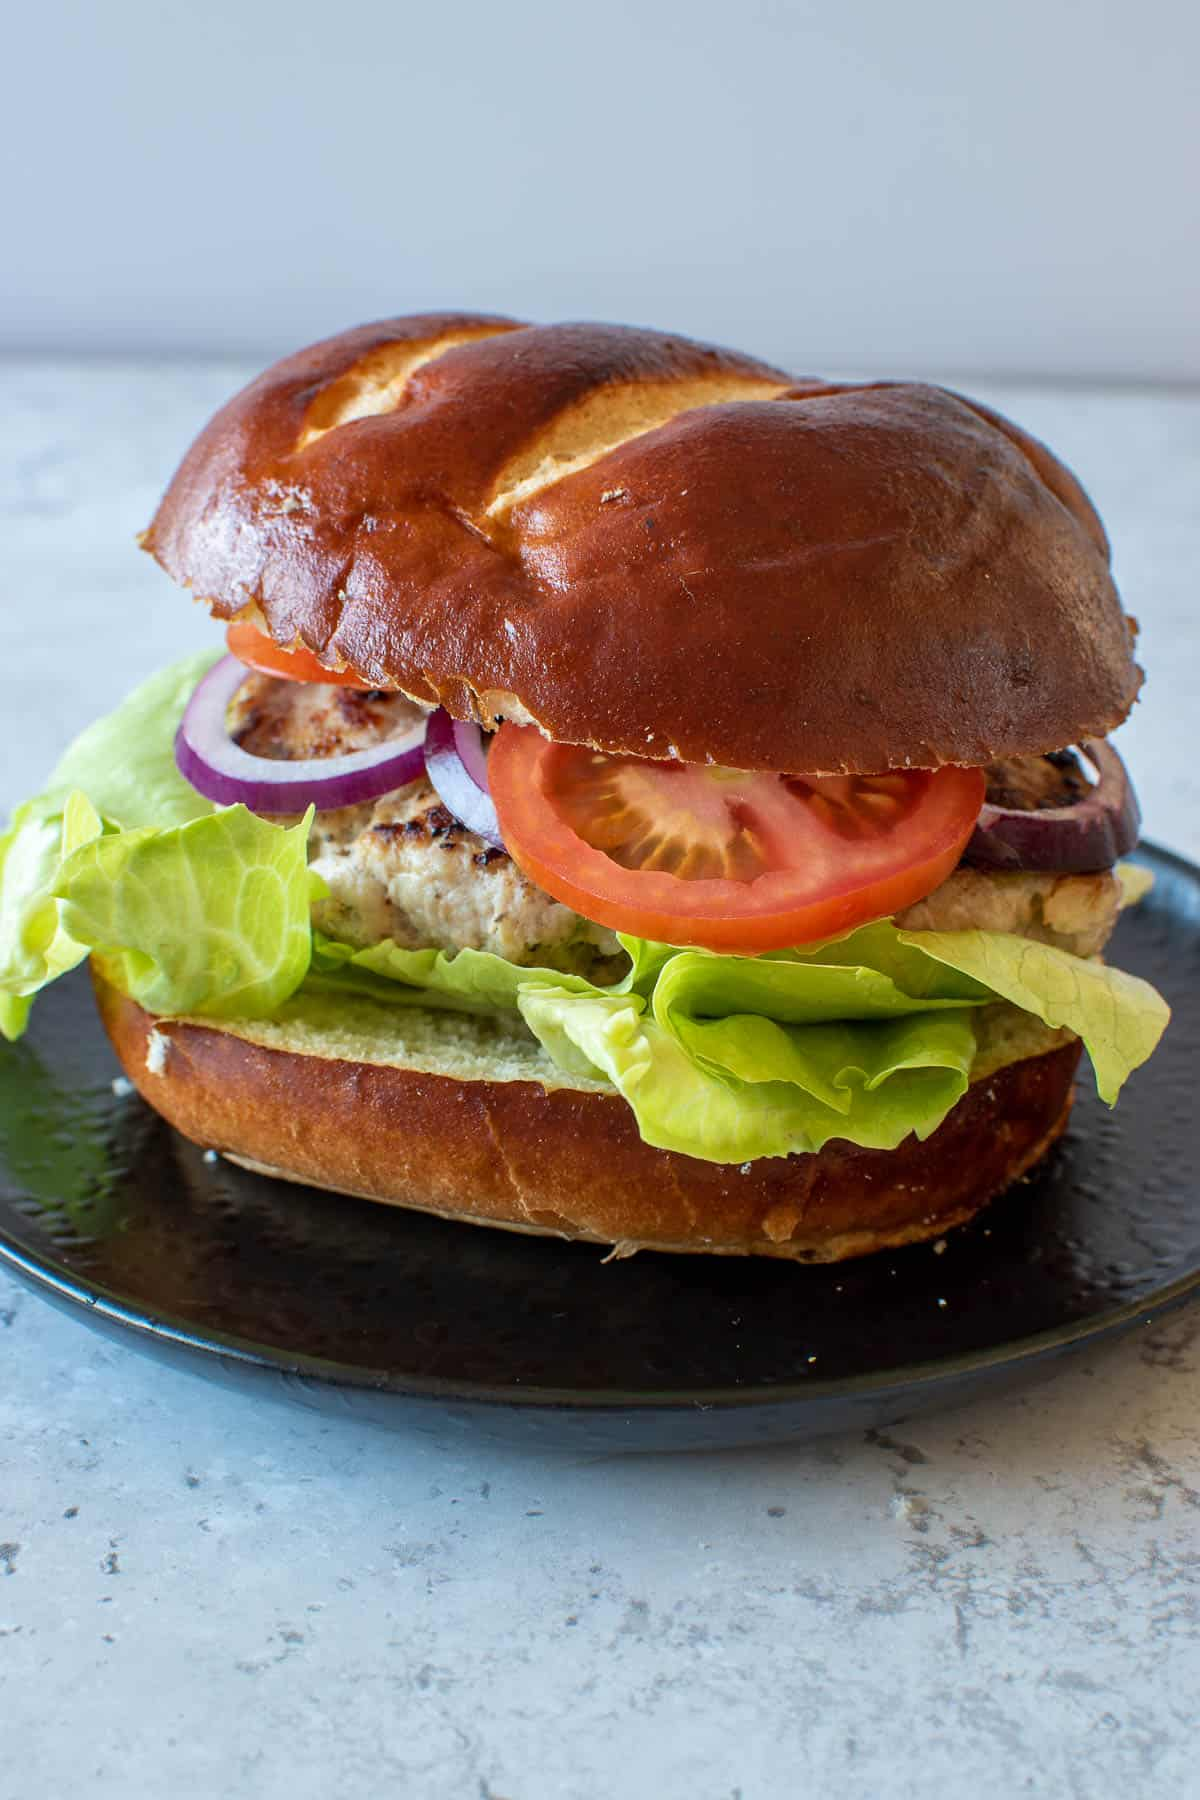 A pork apple burger with lettuce, tomato and onion.